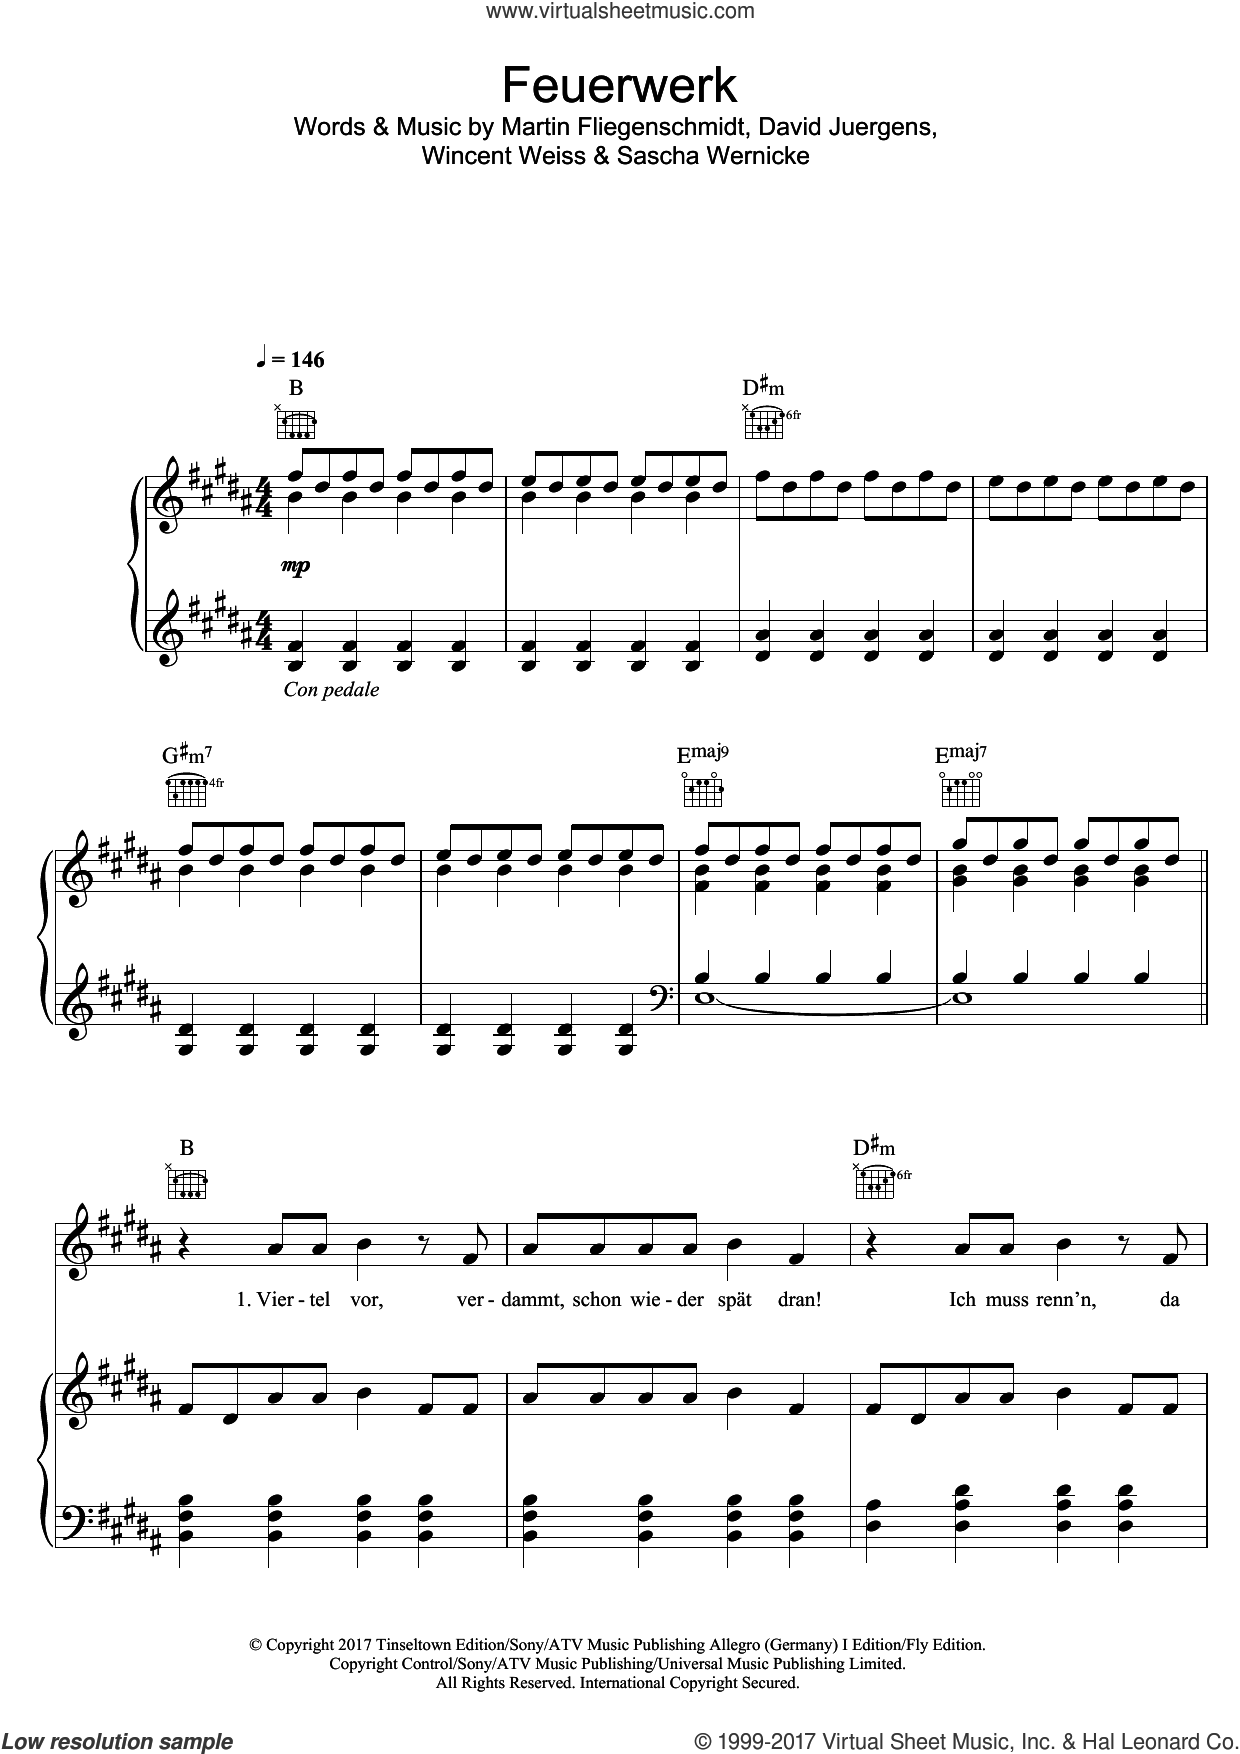 Feuerwerk sheet music for voice, piano or guitar by Wincent Weiss, David Juergens, Martin Fliegenschmidt and Sascha Wernicke, intermediate skill level